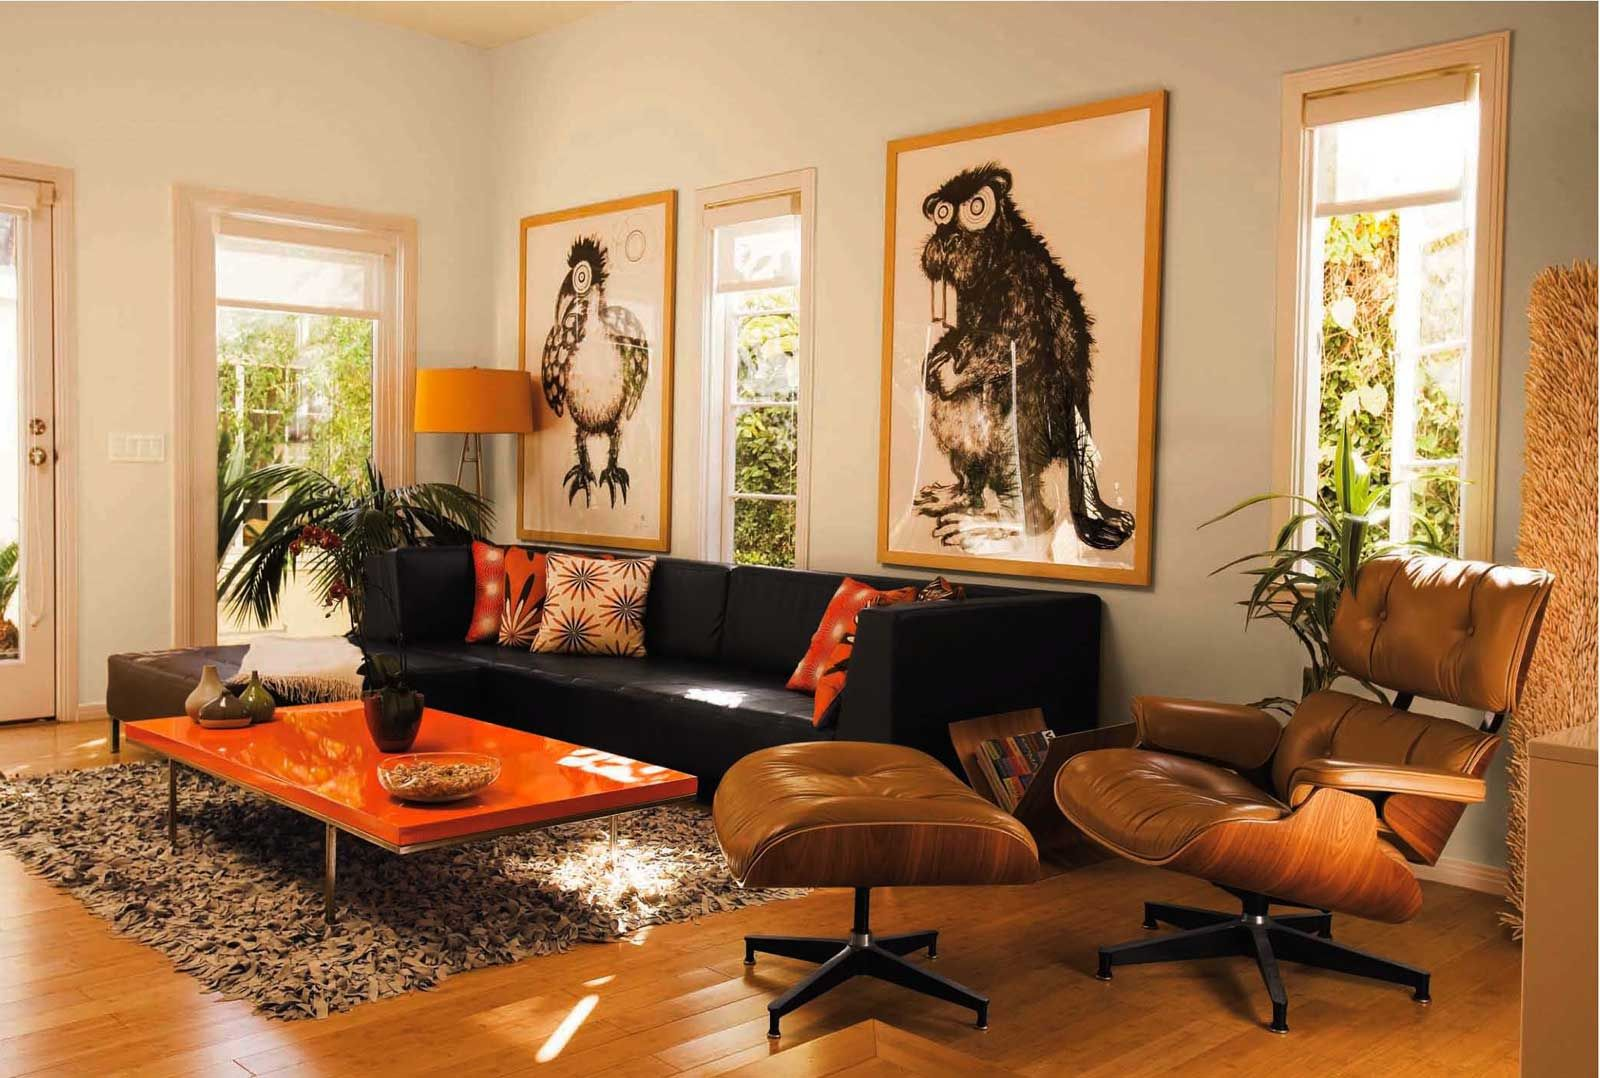 Astonishing black sectionel sofa completed by cushions in living